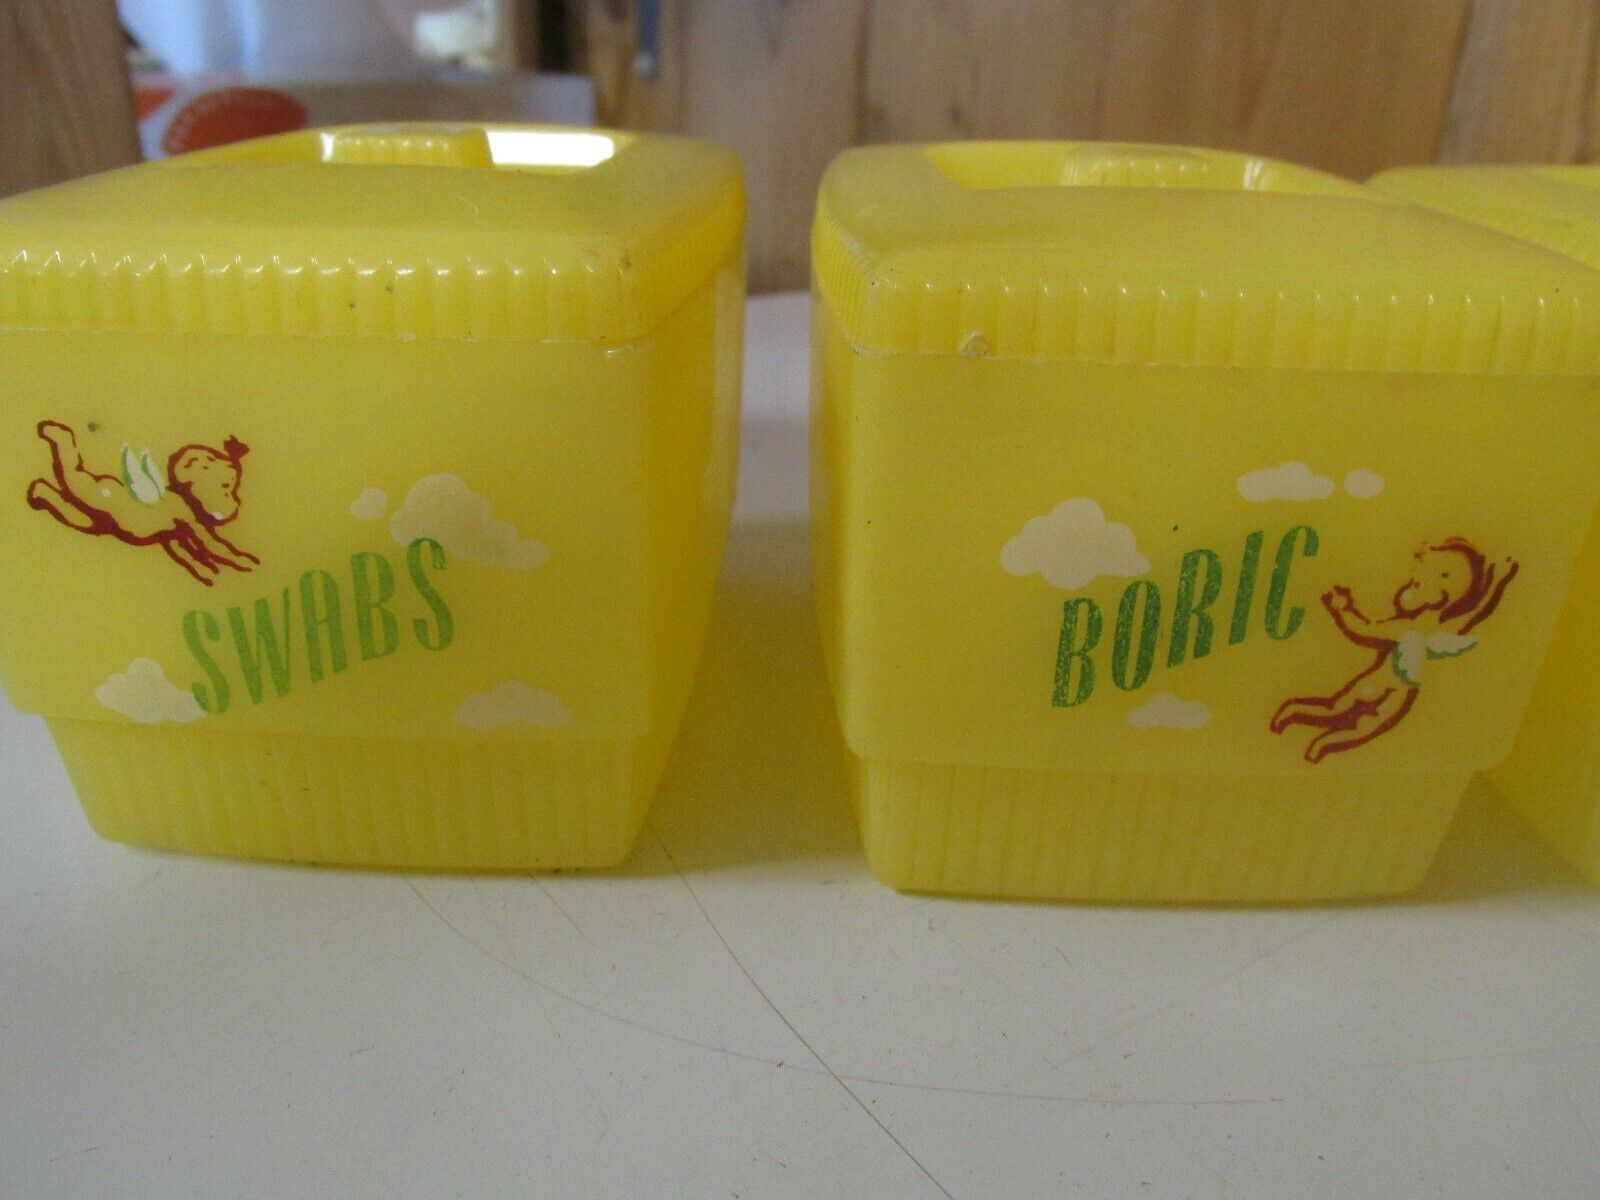 Clarolyte VINTAGE 1950s YELLOW PLASTIC BABY NURSERY CONTAINERS  - $14.99